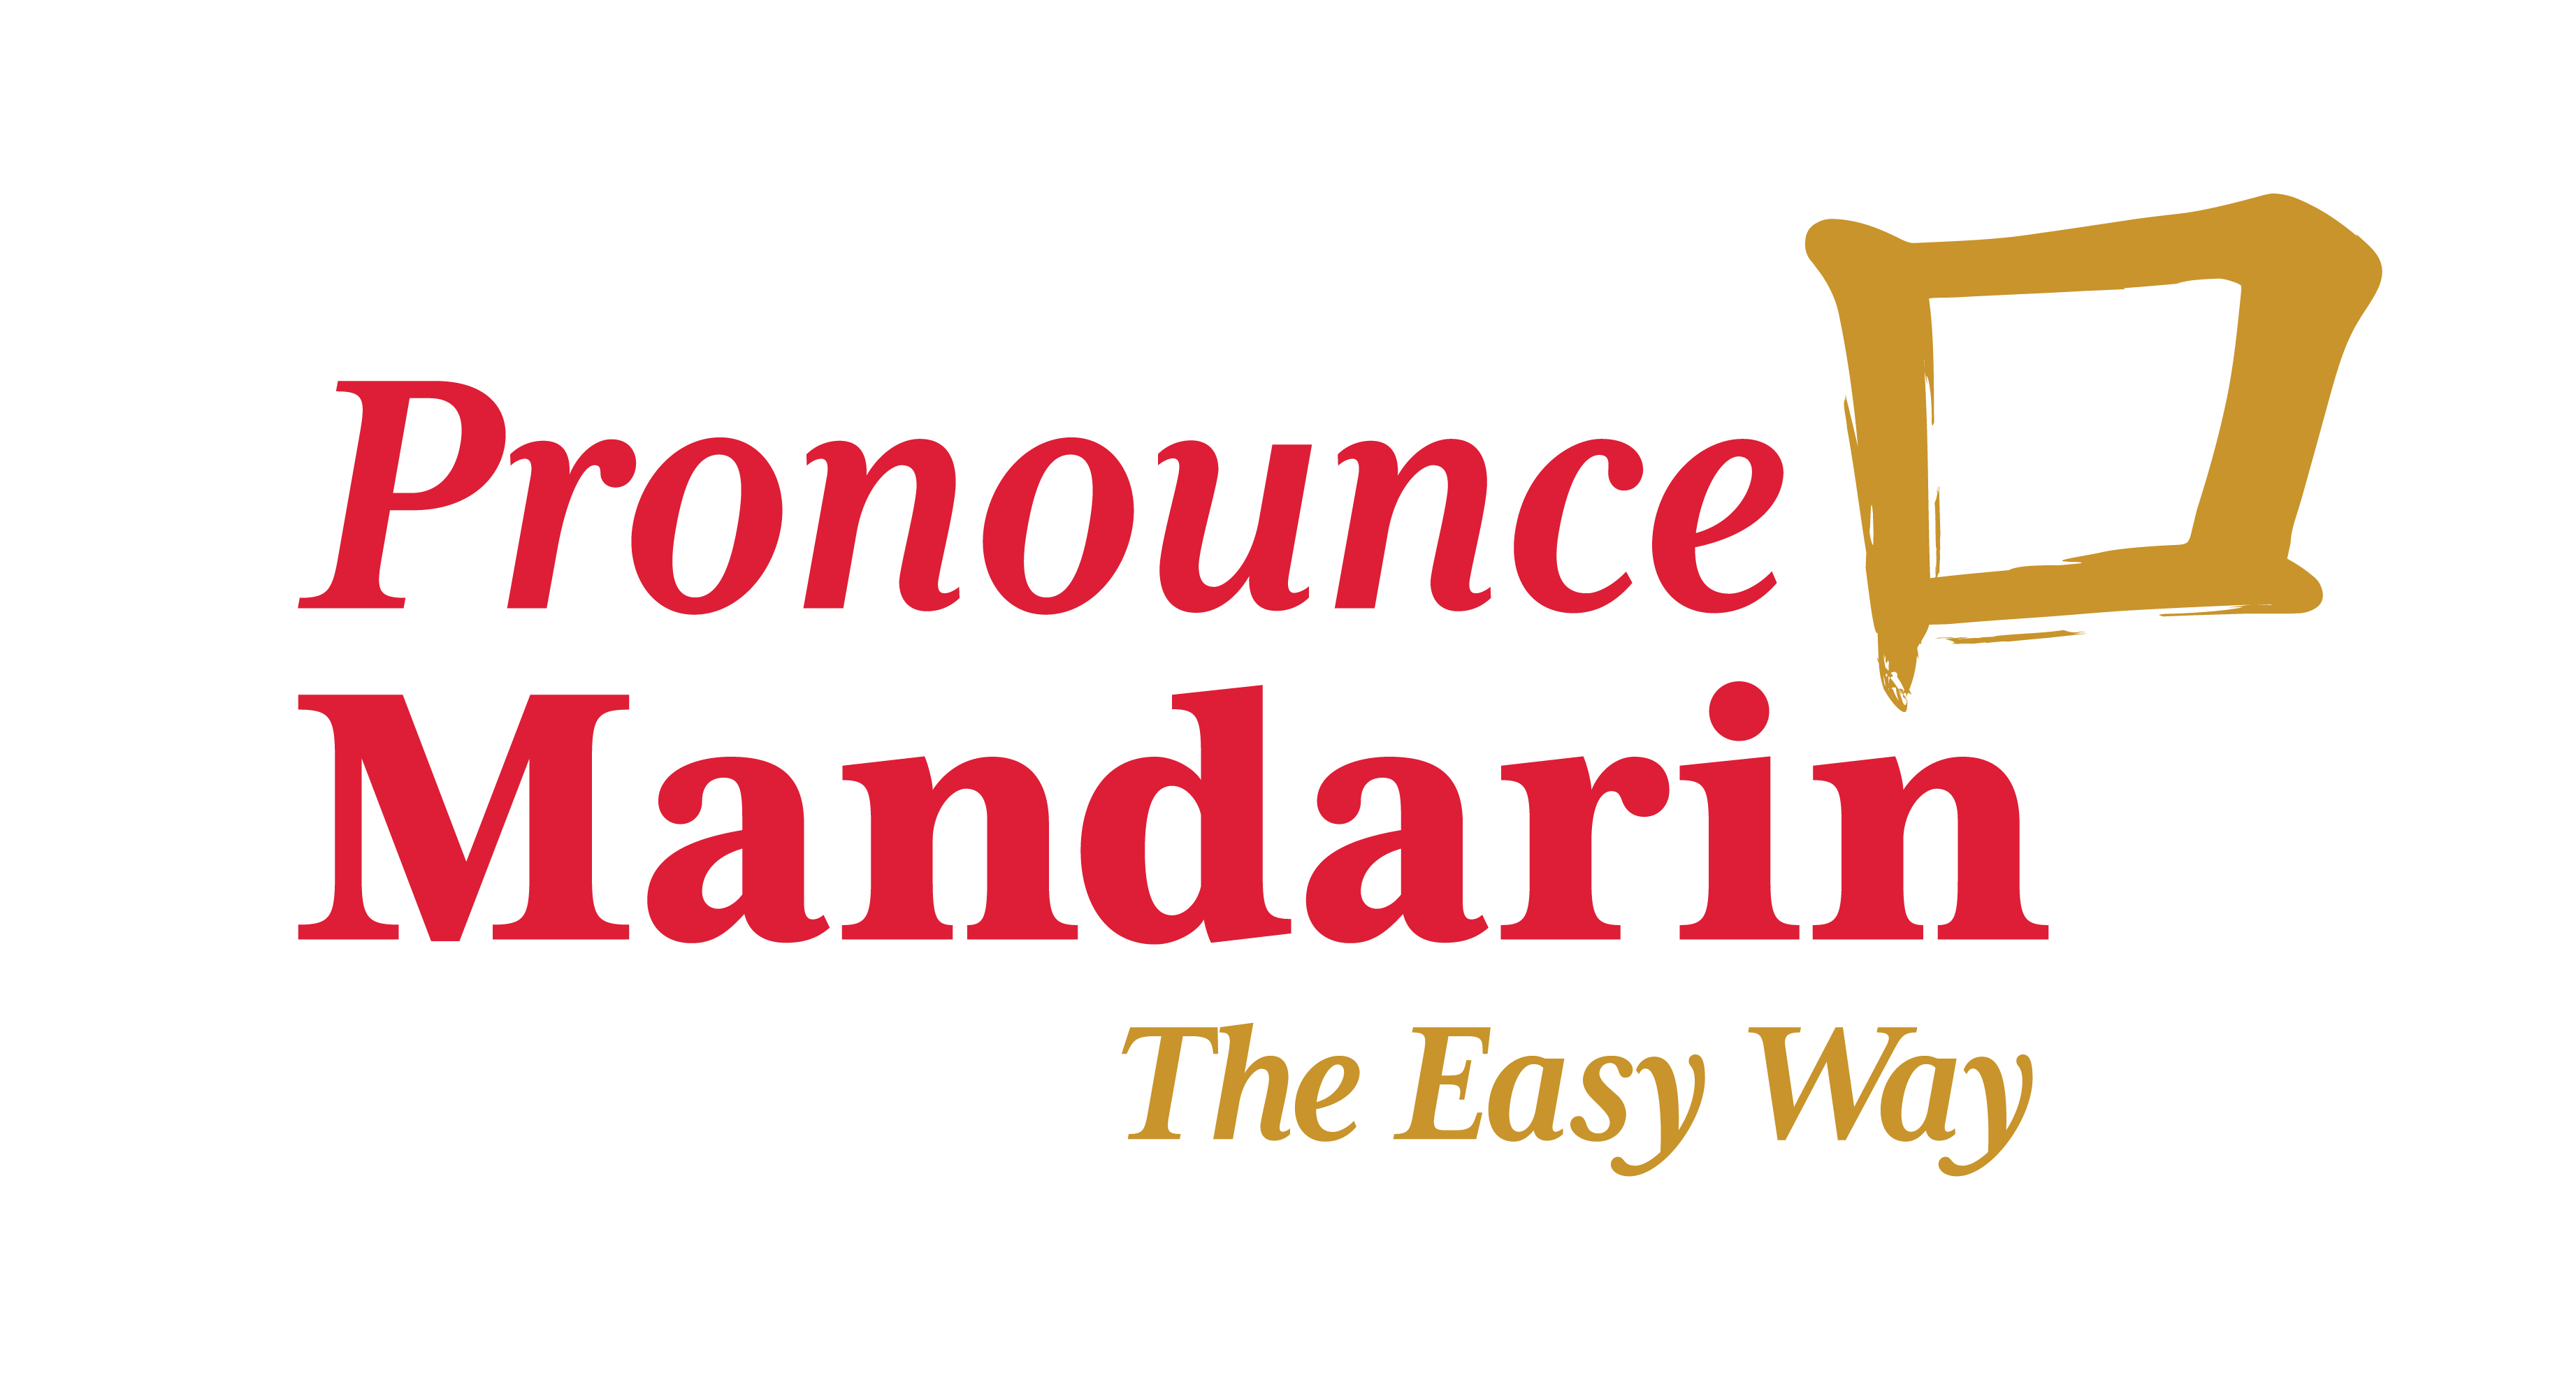 Pronounce Mandarin - The Easy Way